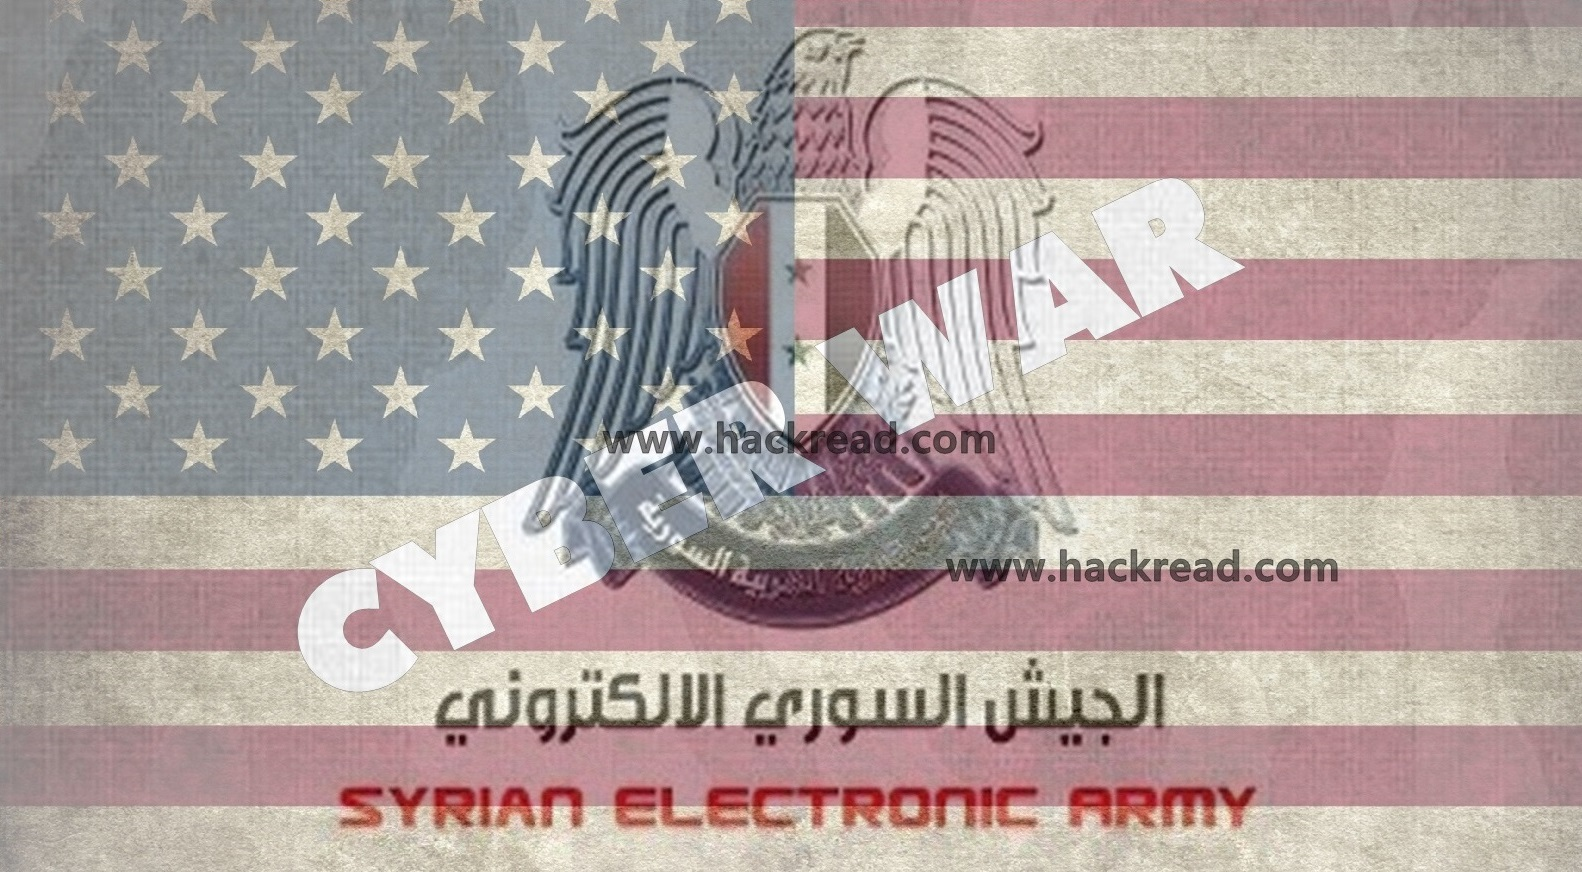 cyber-armageddon-what-syrian-army-can-do-if-us-attacks-syria-01